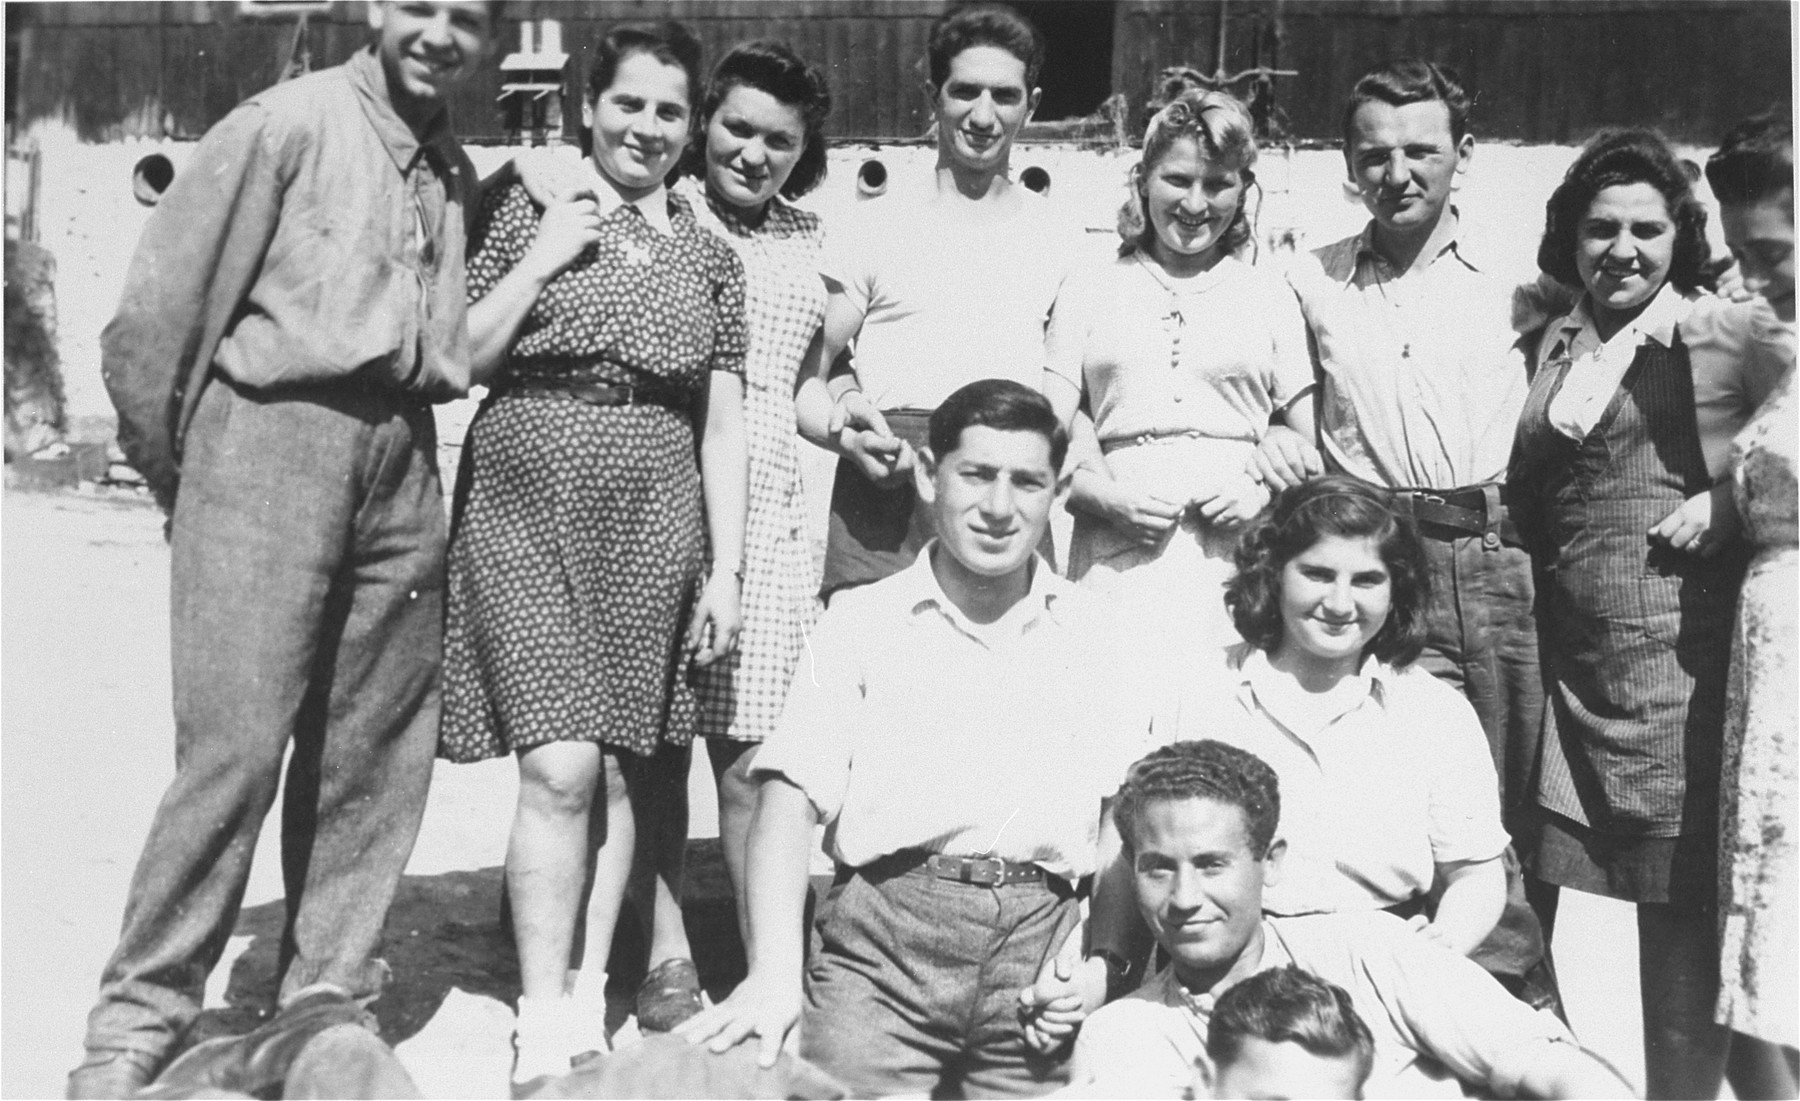 Group portrait of members of Kibbutz Buchenwald.    Those pictured include Motek Nussenbaum, Karla, Shlomo Shiff, Izik Neumann, Raiza and Sylvia.